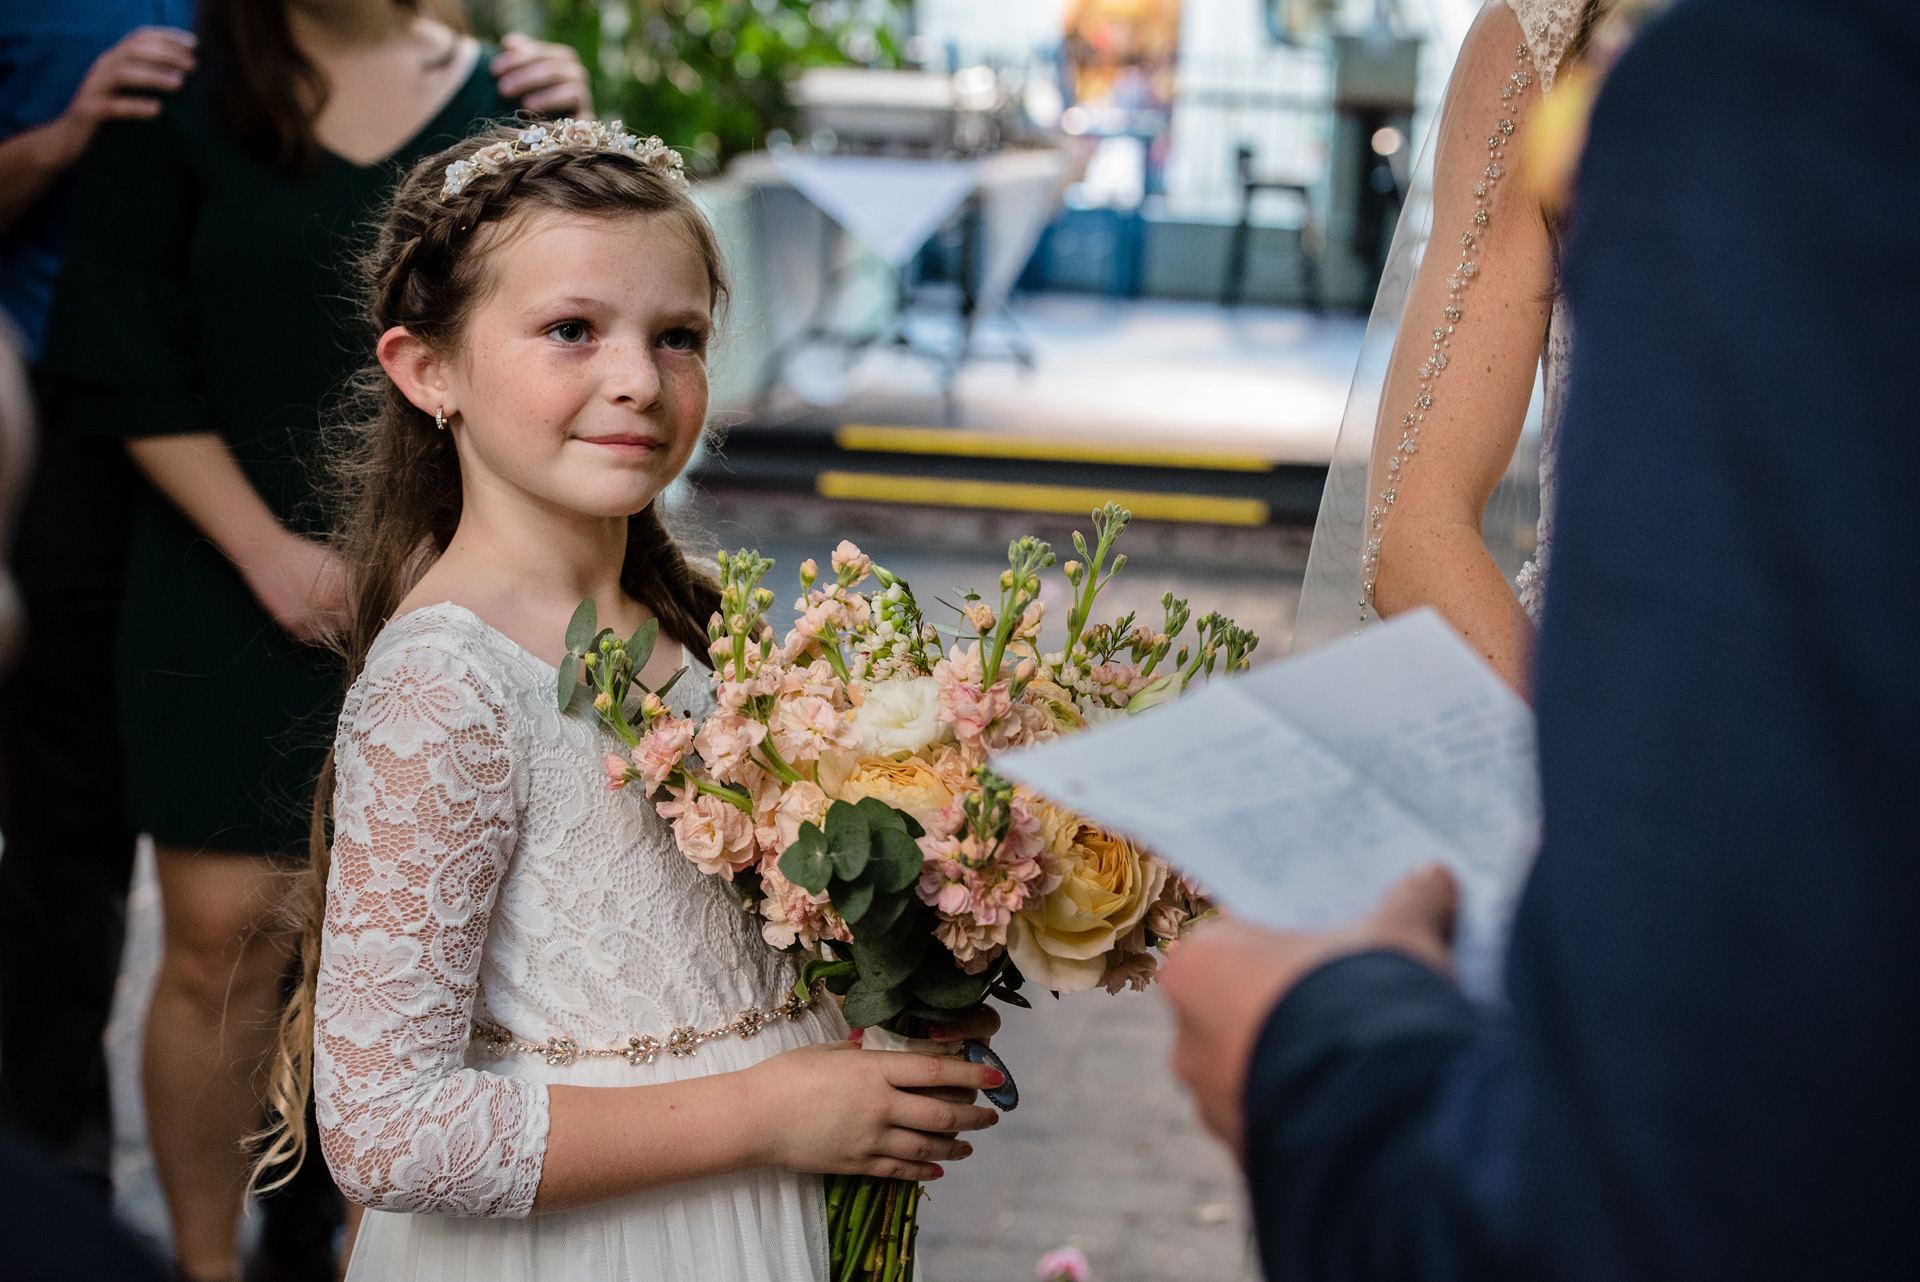 Florida Wedding Photography in Key West | The flower girl looks at her mom with both admiration and approval